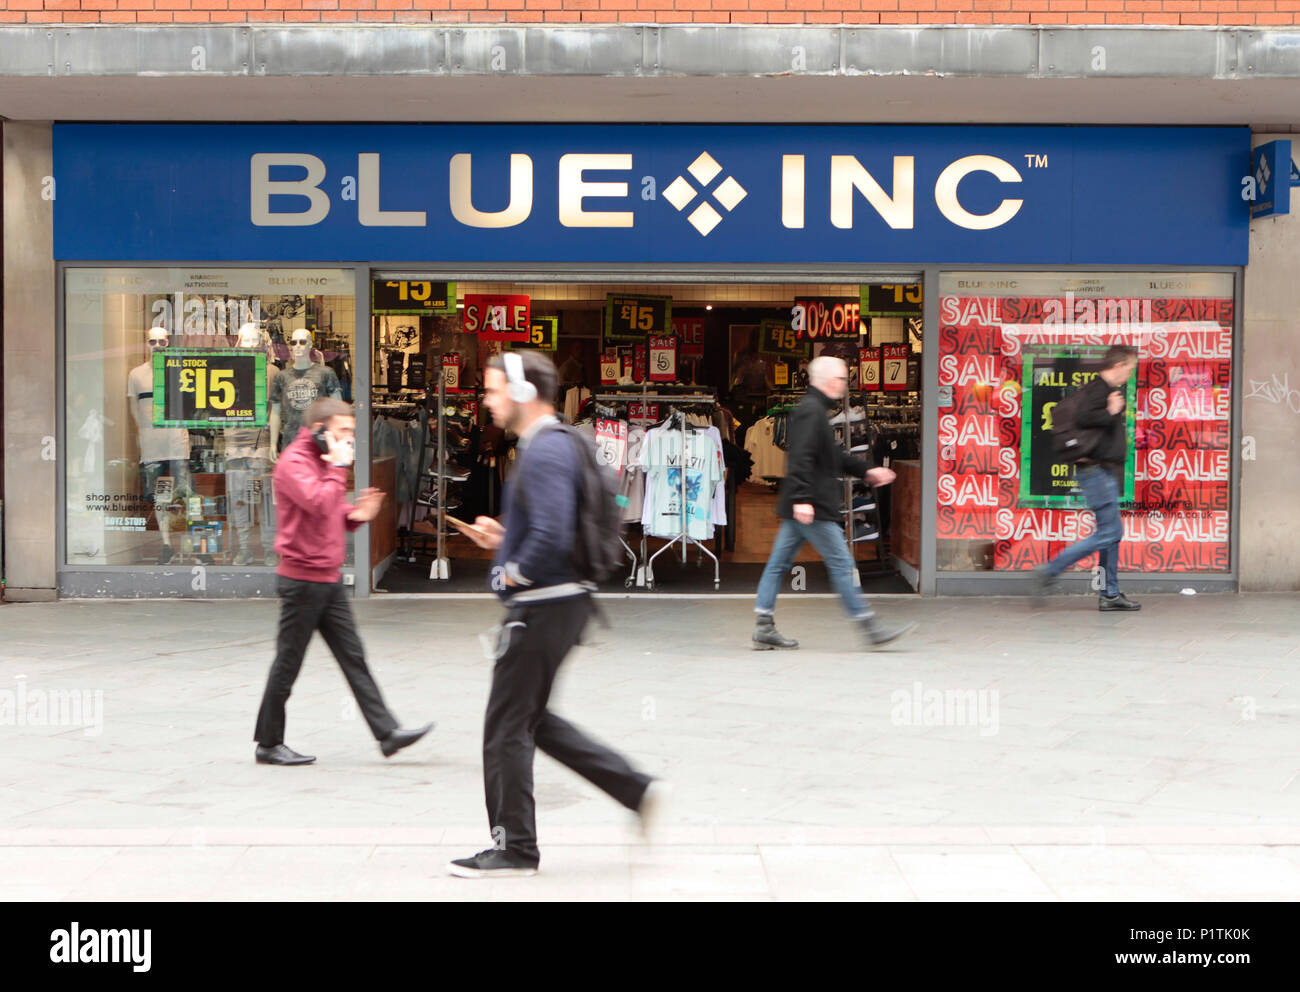 exterior view of BLUE INC, fashion retail outlet. Shops and people shopping in Harrow, middlesex, London, UK - Stock Image